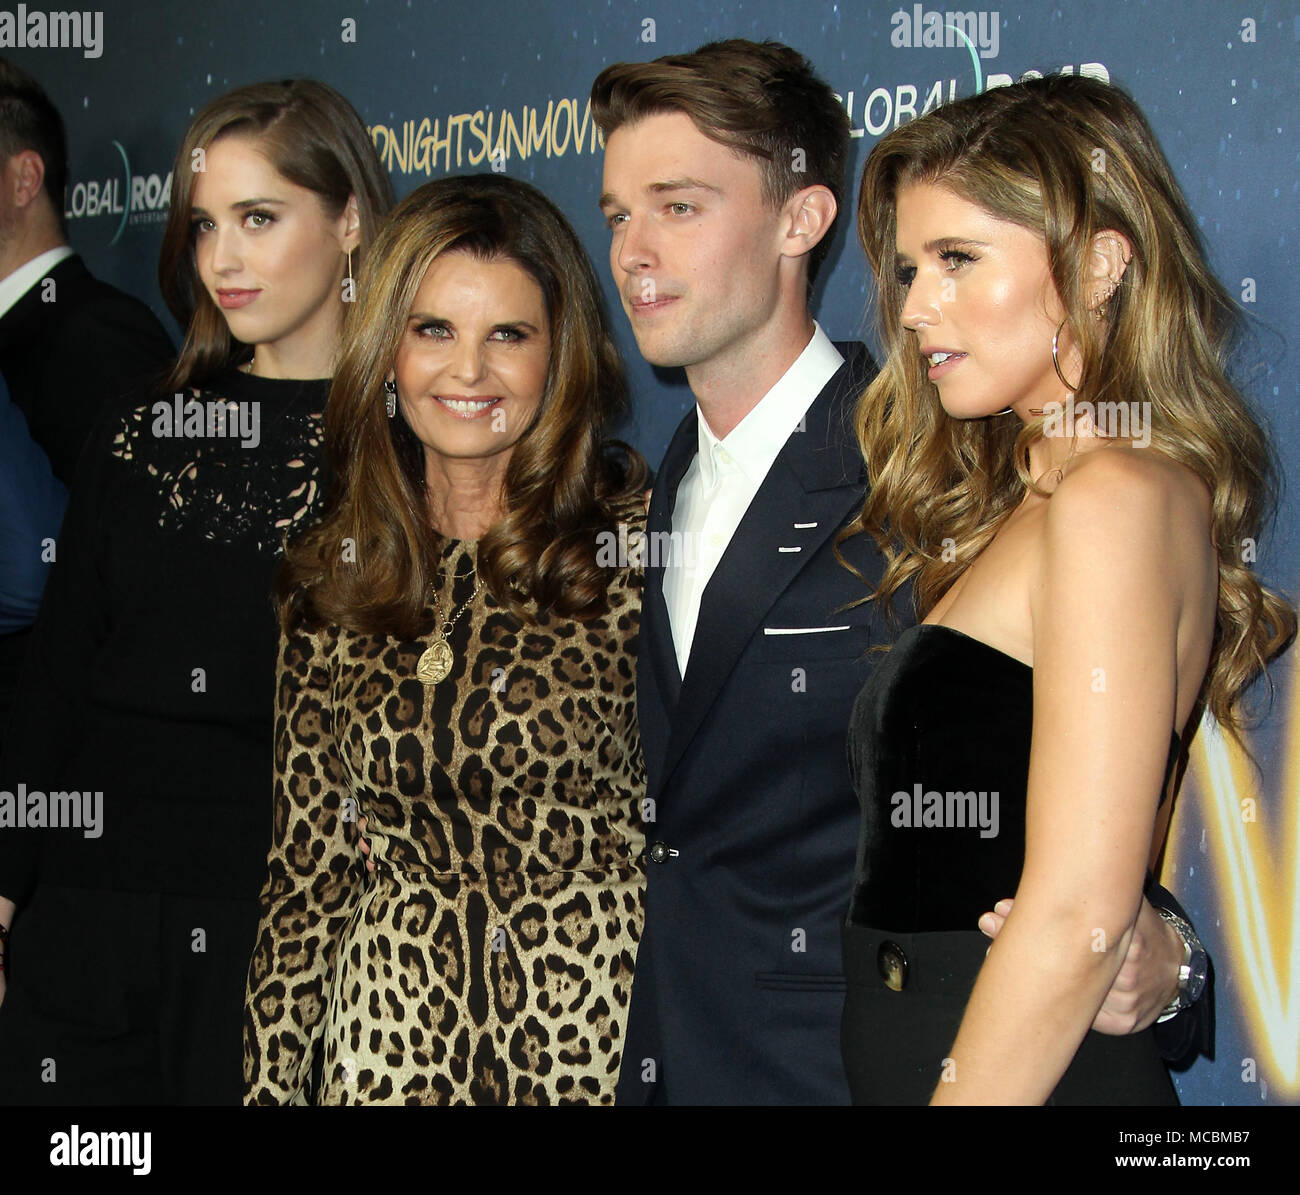 Midnight Sun Premiere held at the ArcLight Hollywood Theatre